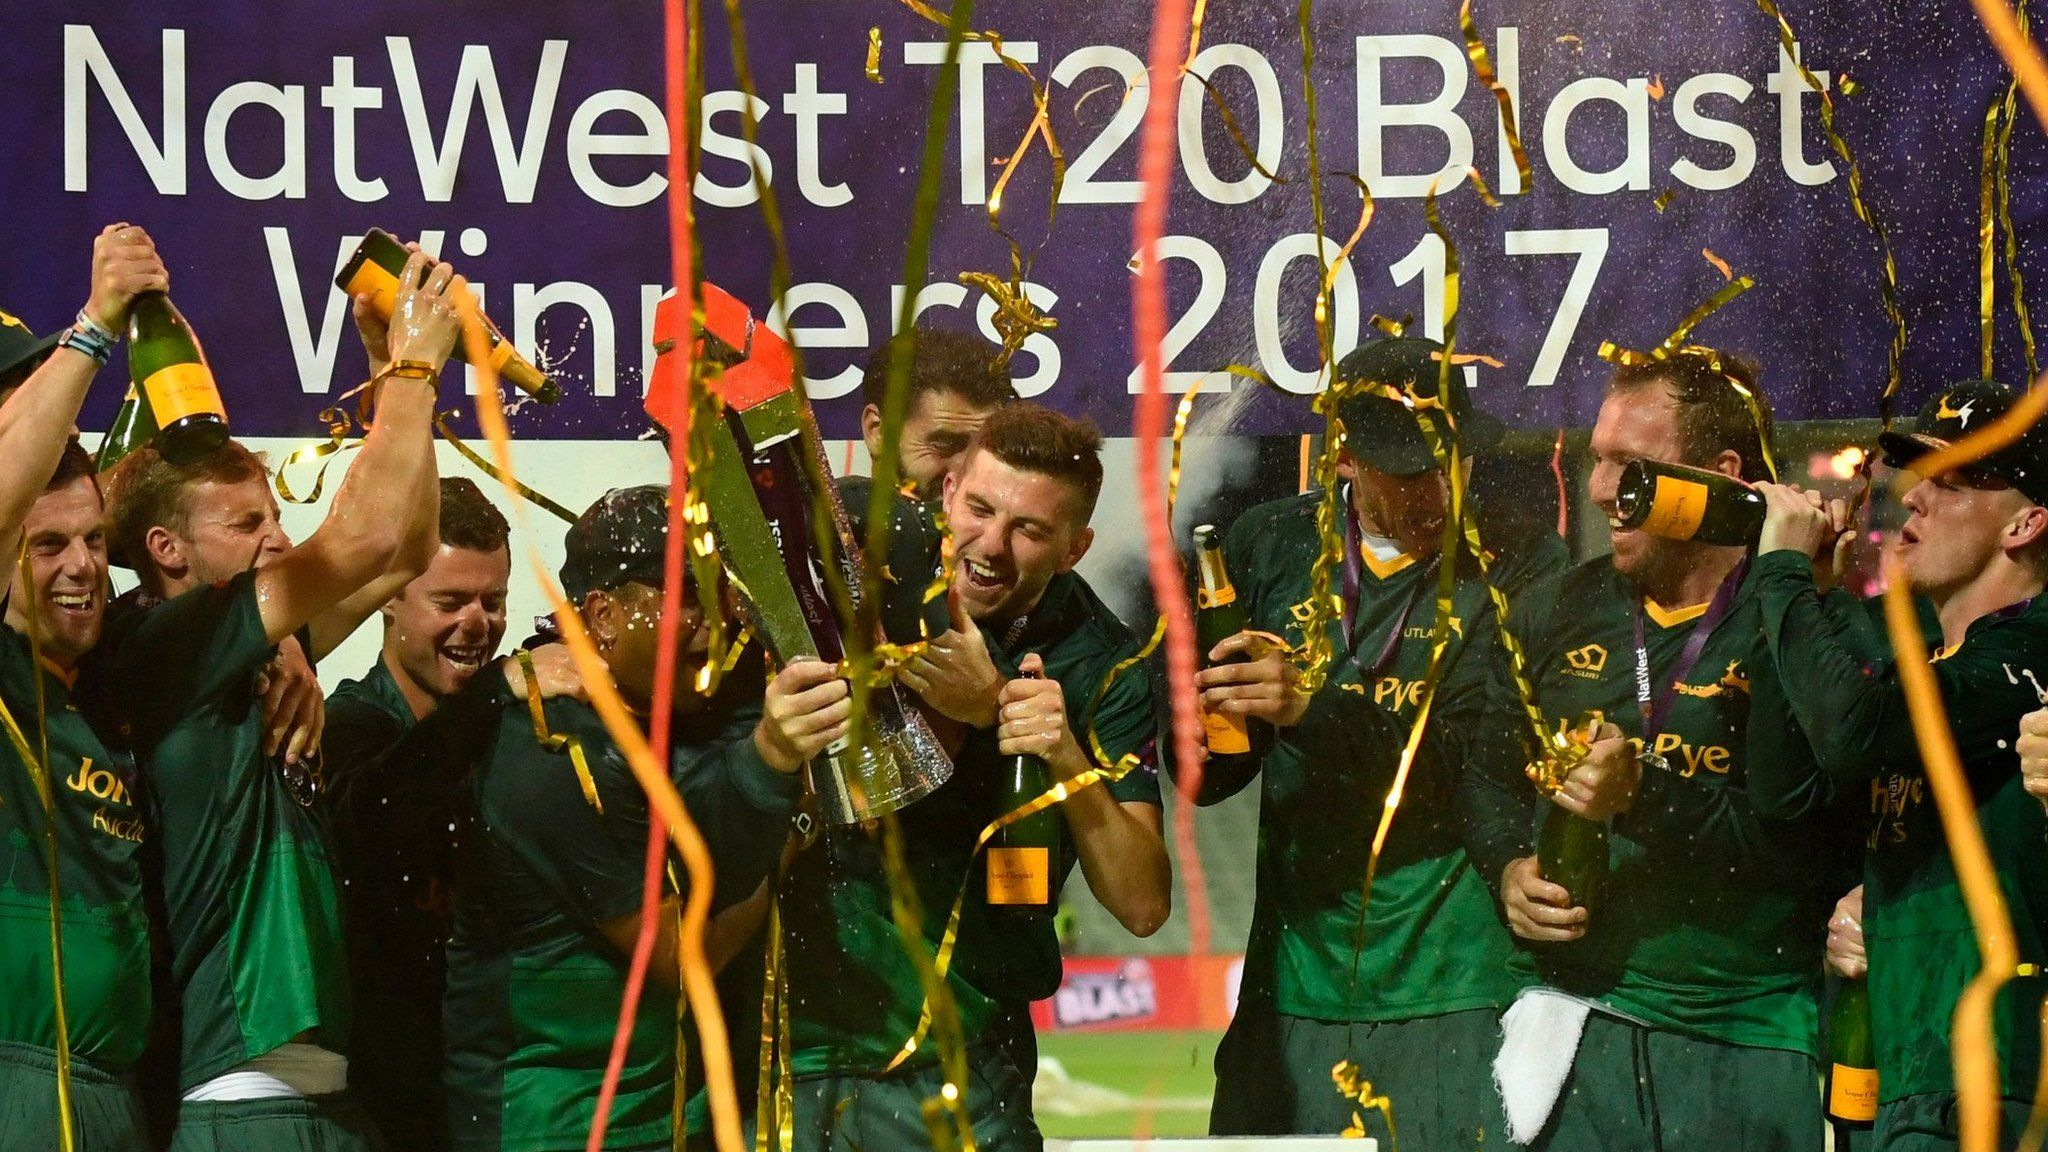 2018 T20 Blast Finals Day: Who are favourites and who will